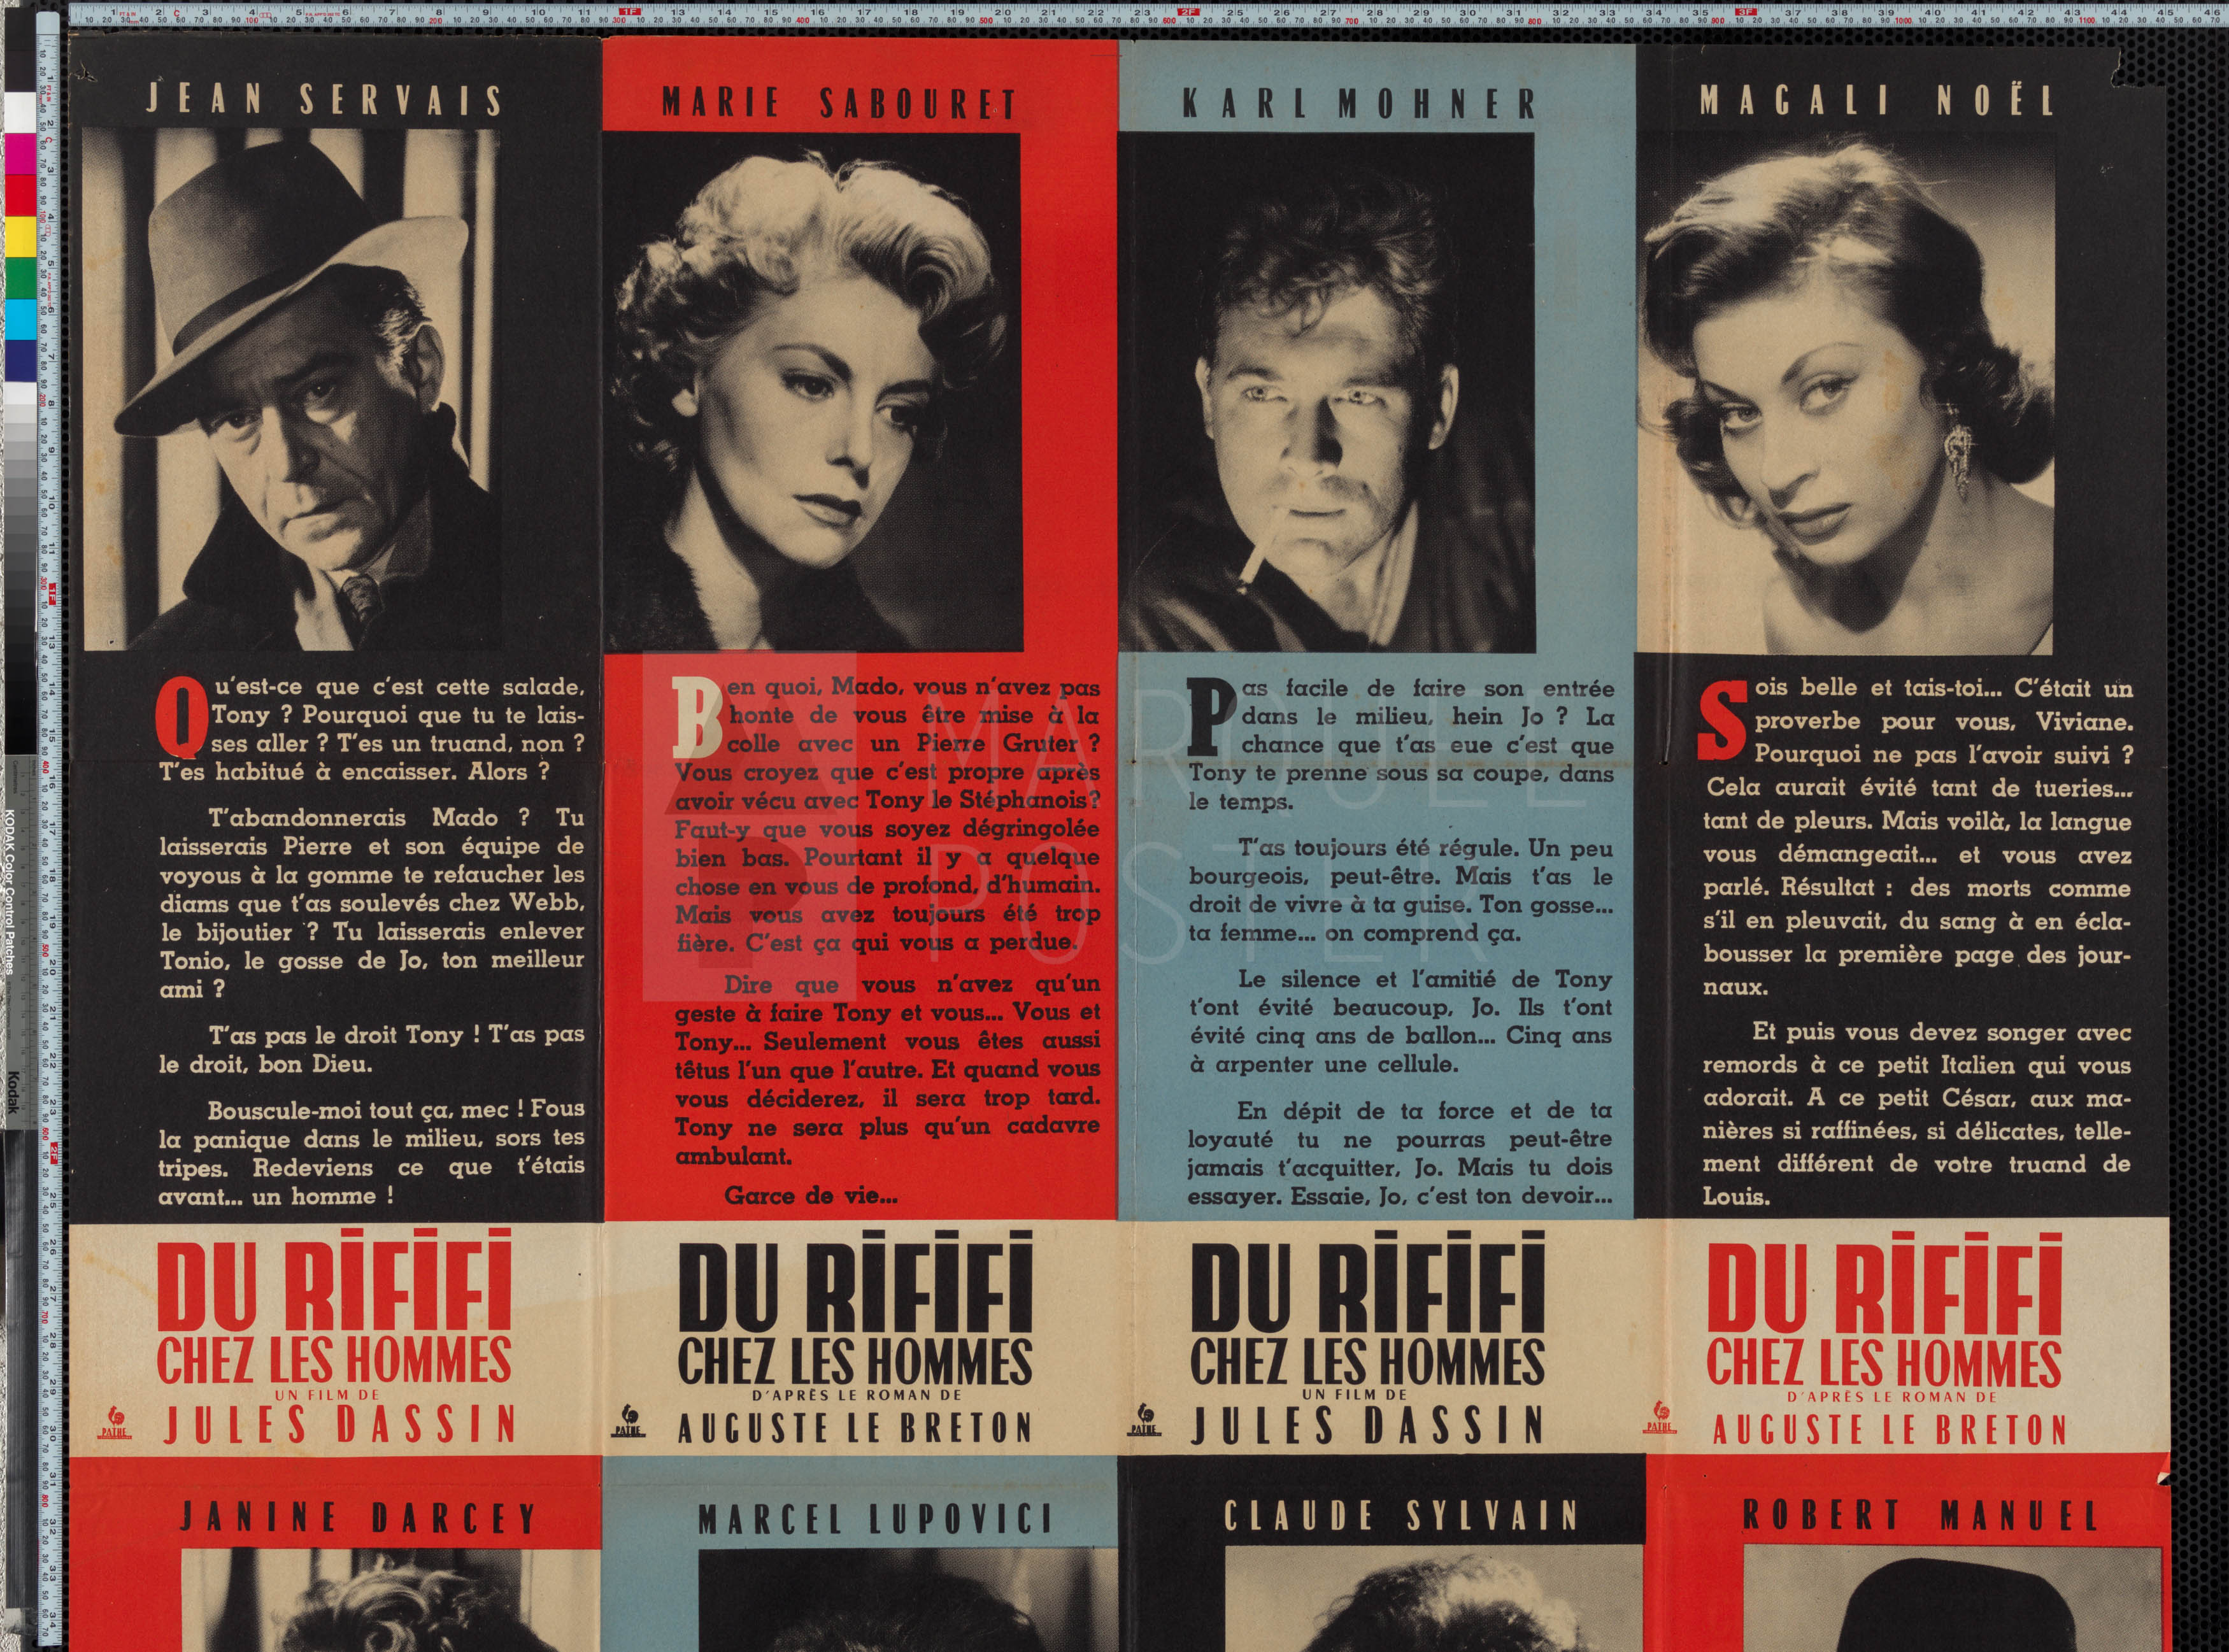 10-rififi-character-style-french-1-panel-1955-02